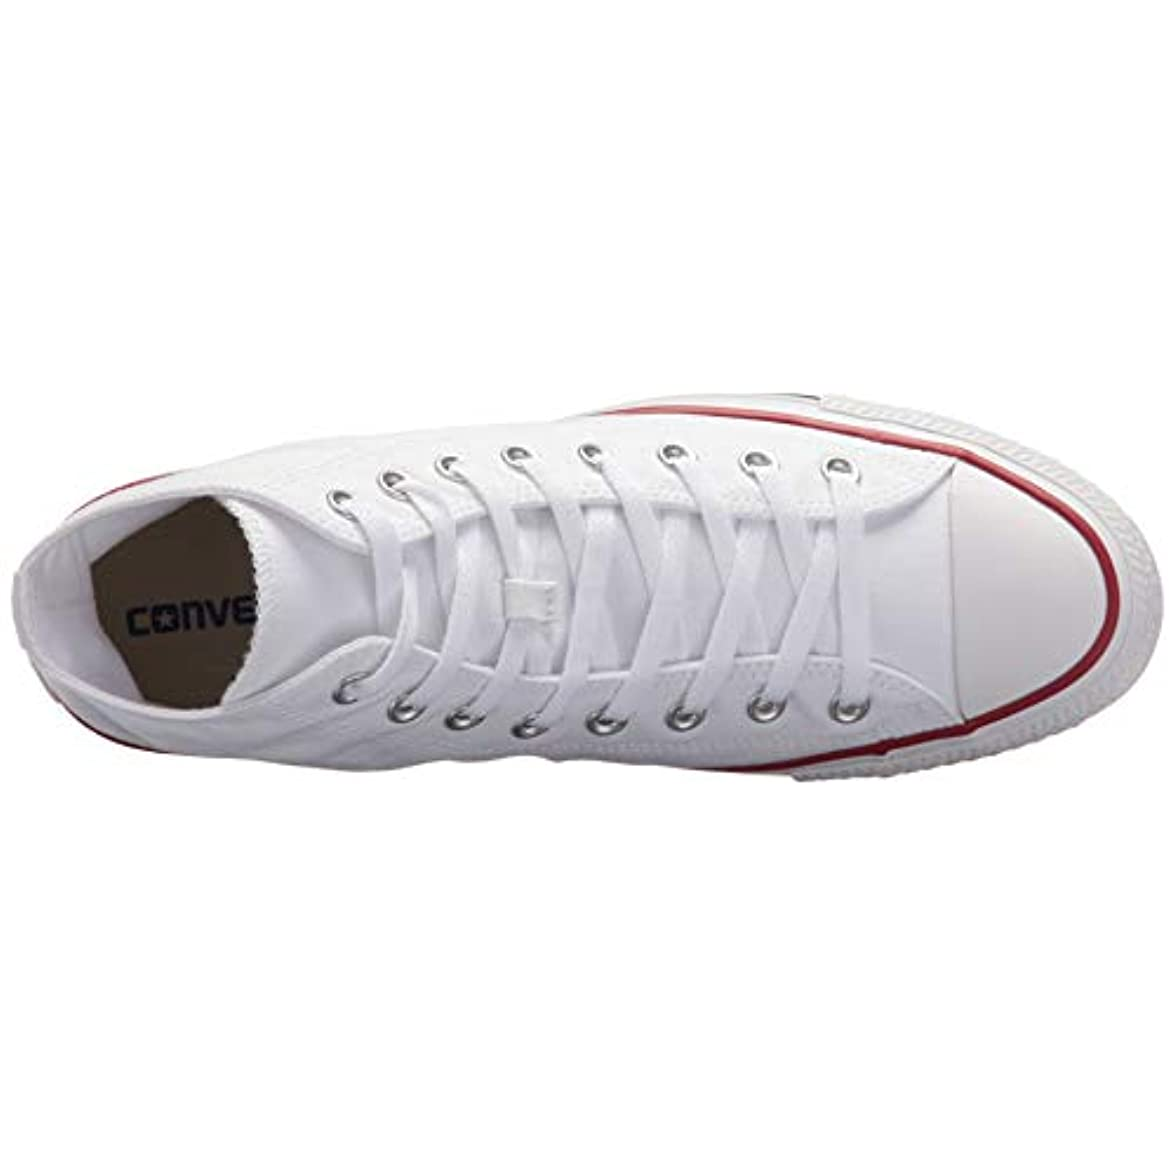 Converse Unisex Chuck Taylor As Specialty Hi Lace-up